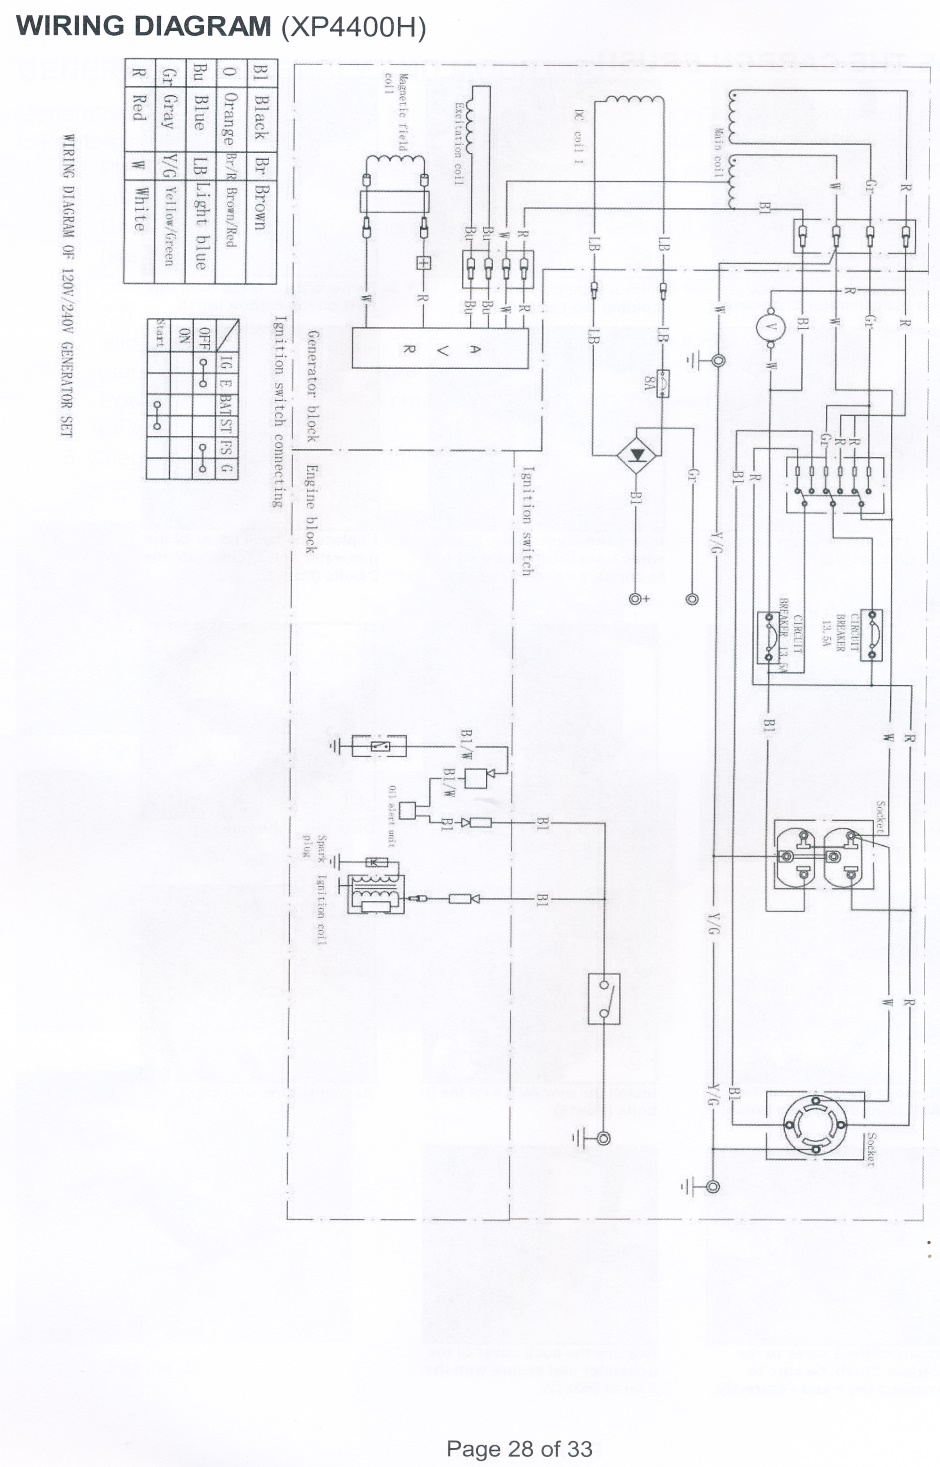 wiring diagram genset denyo